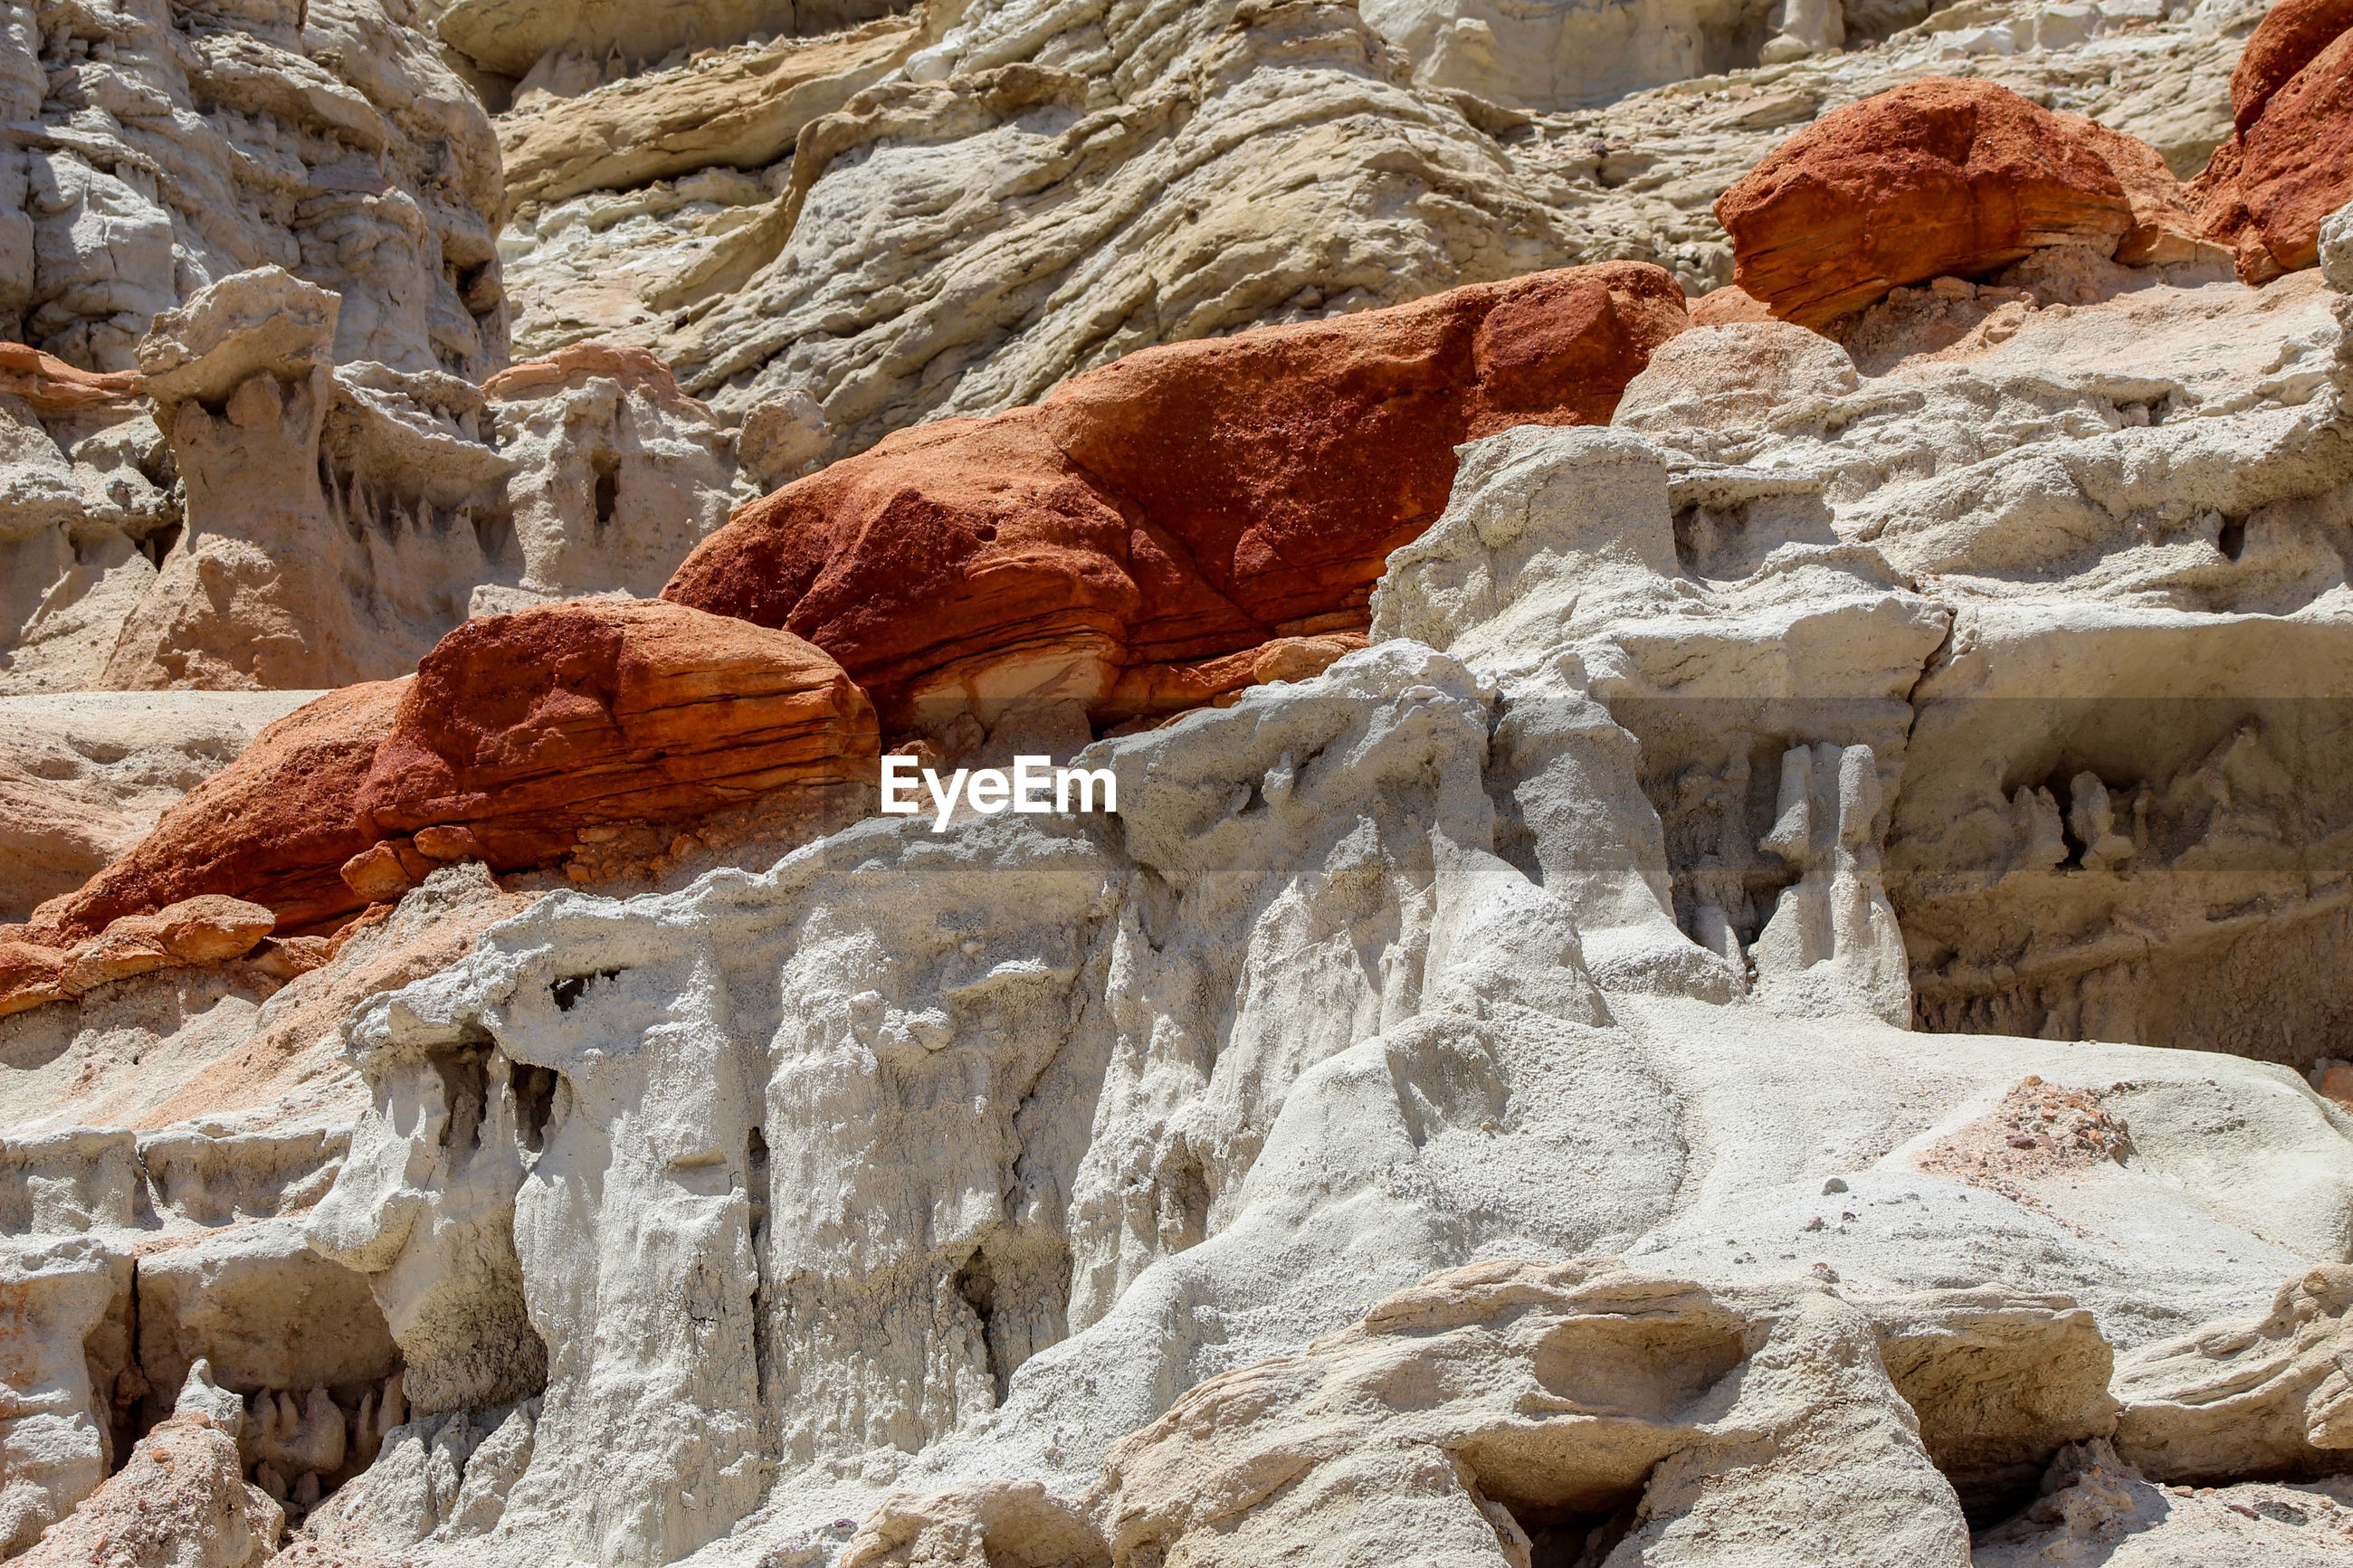 LOW ANGLE VIEW OF ROCKS ON ROCK FORMATIONS